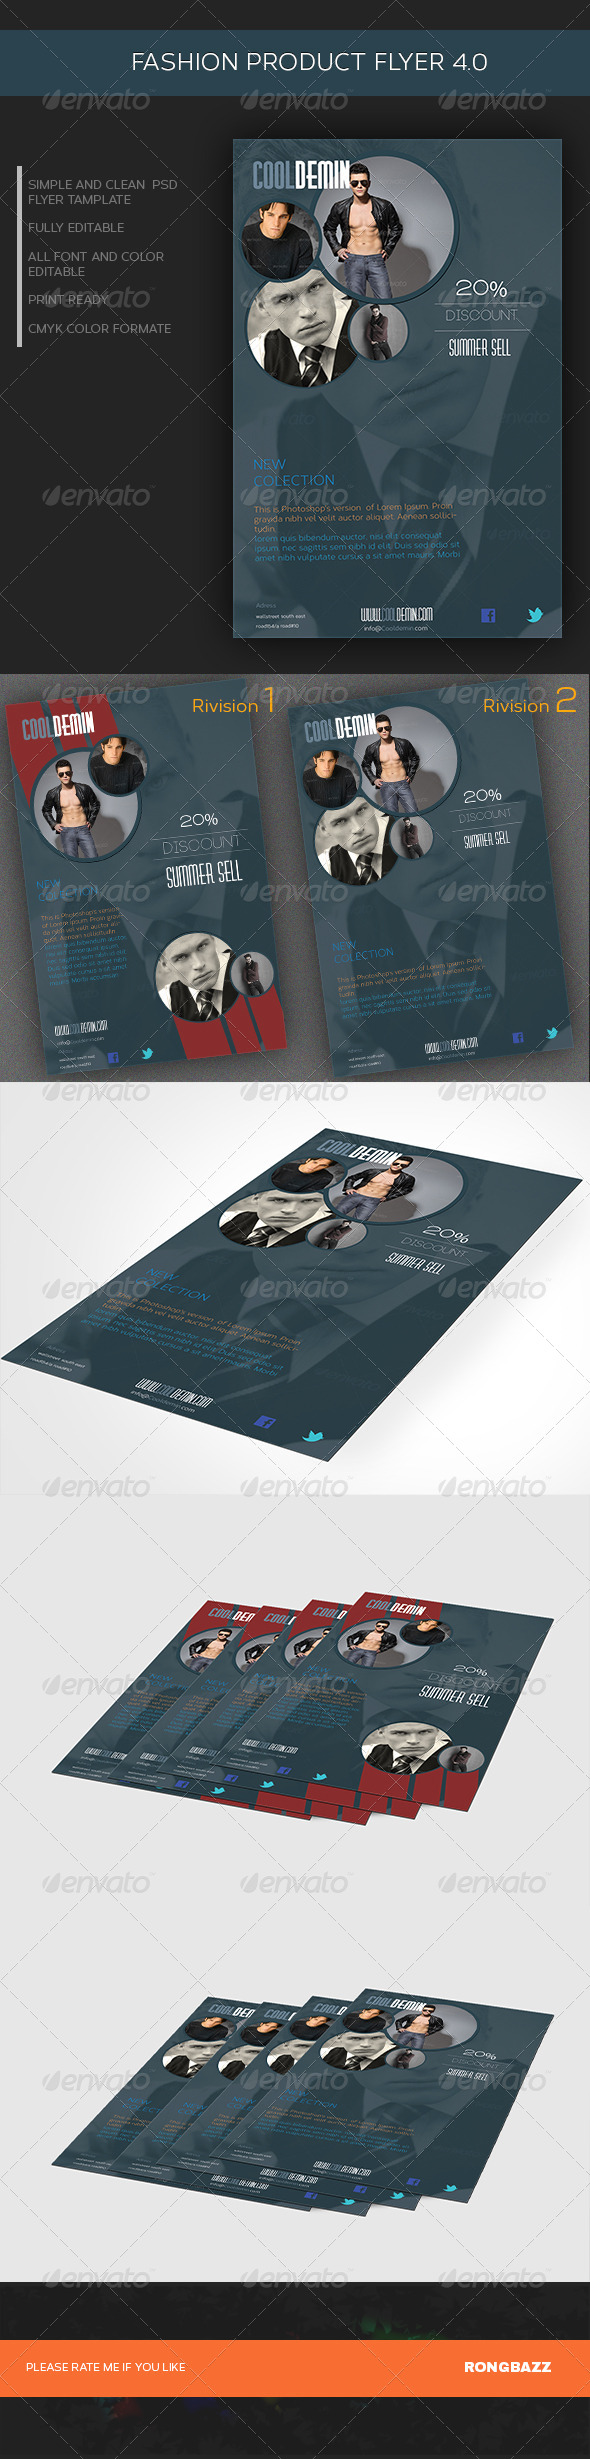 Fashion Product Flyer 4.0